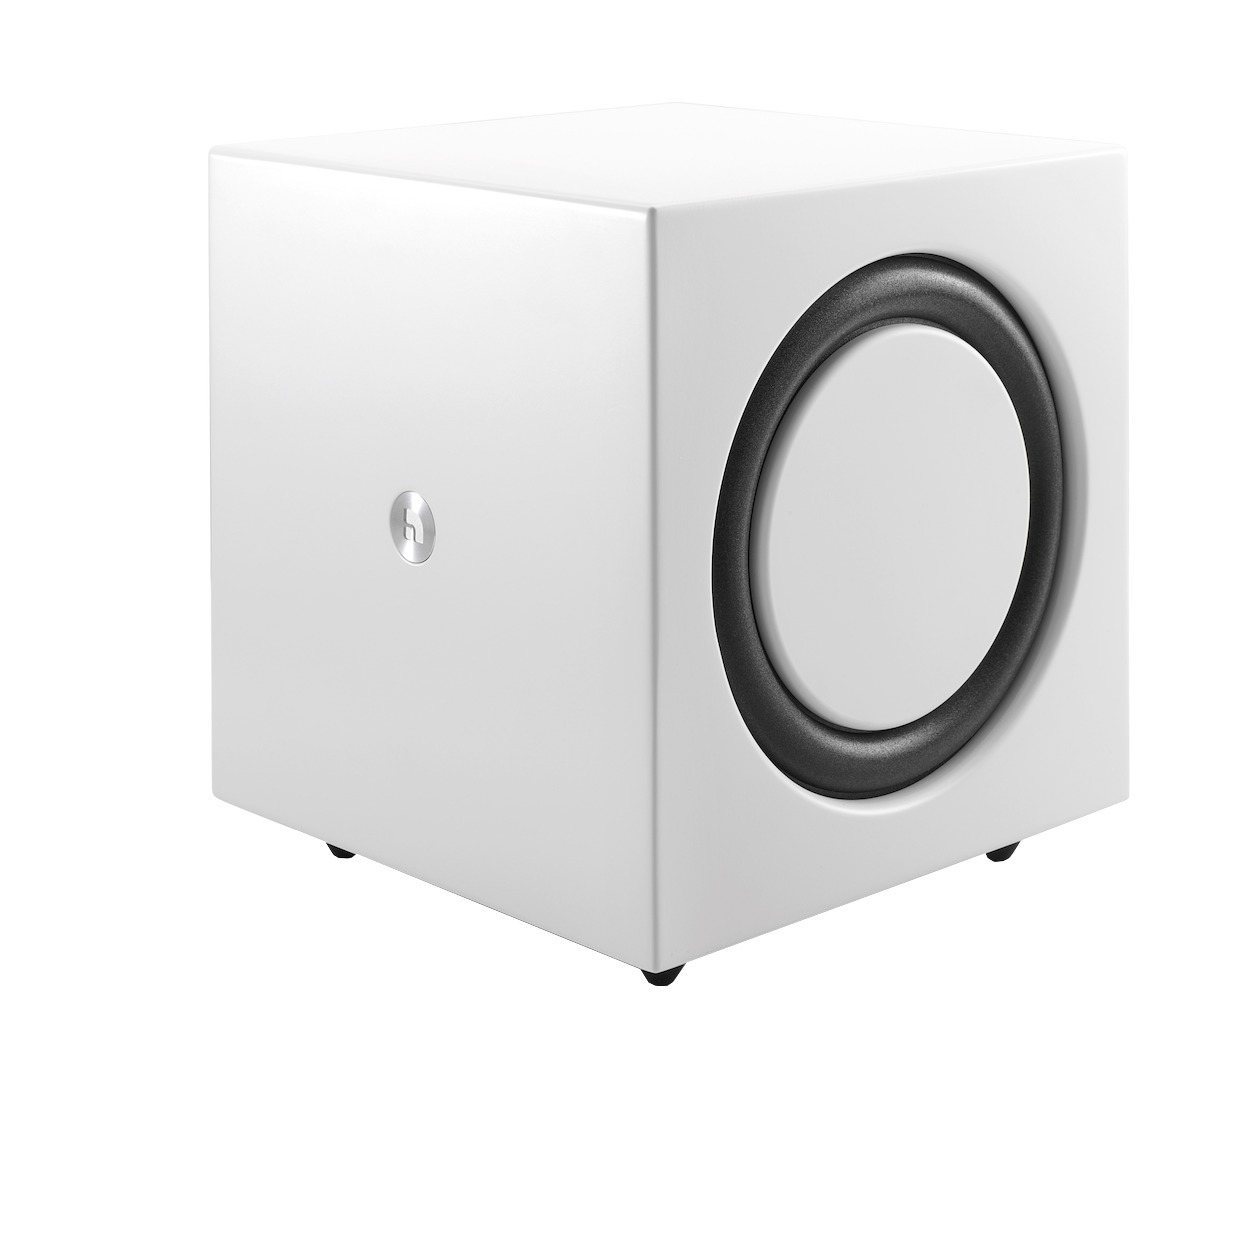 Op HardwareComponenten.nl is alles over beeld-|-geluid te vinden: waaronder expert en specifiek Audio Pro Addon C Subwoofer Wit (Audio-Pro-Addon-C-Subwoofer-Wit372539405)